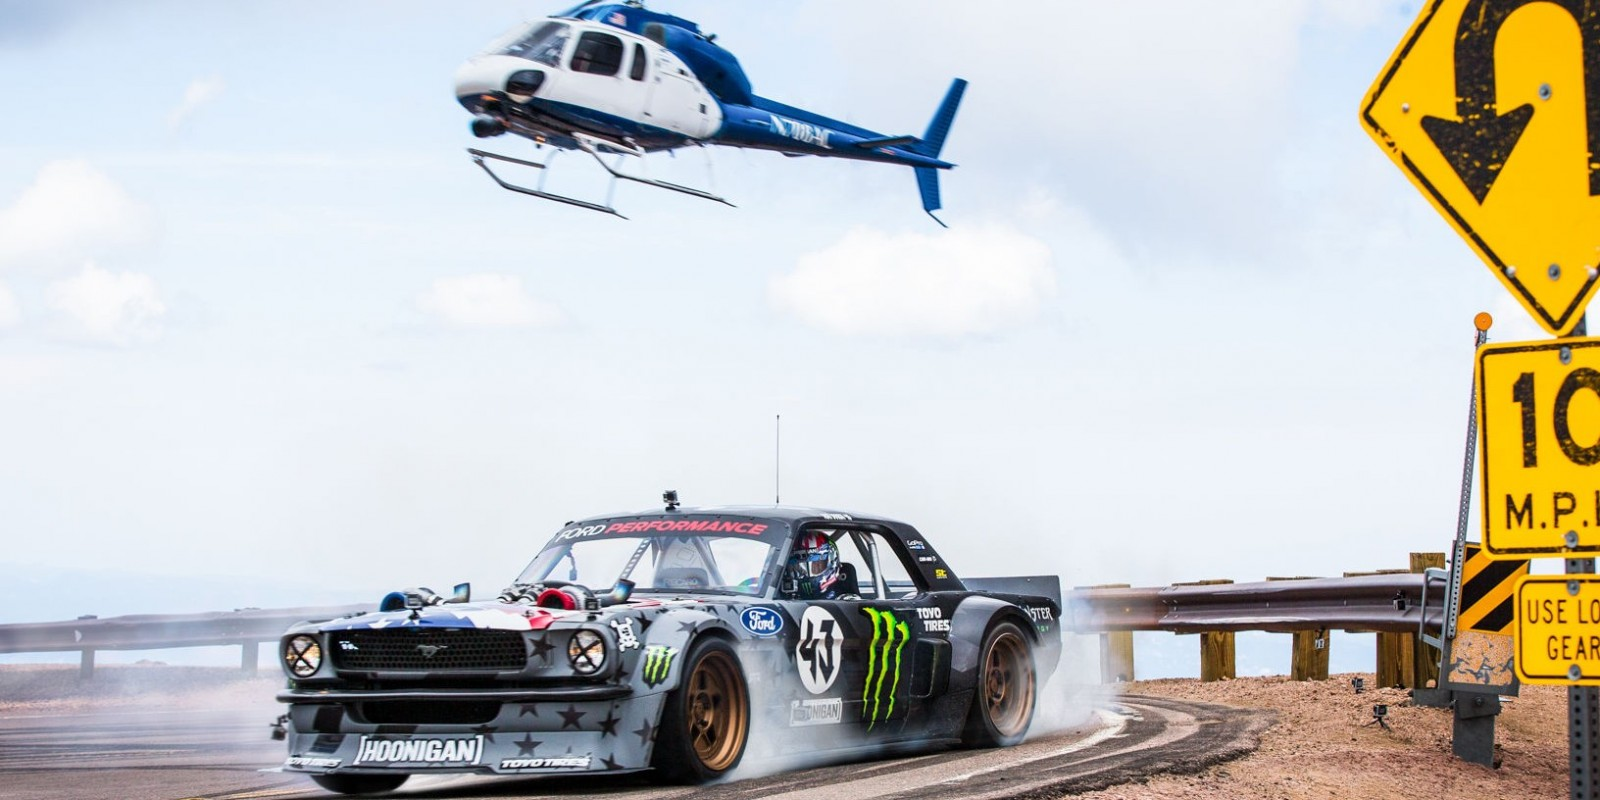 2017 images from Ken Block's Climbkhana